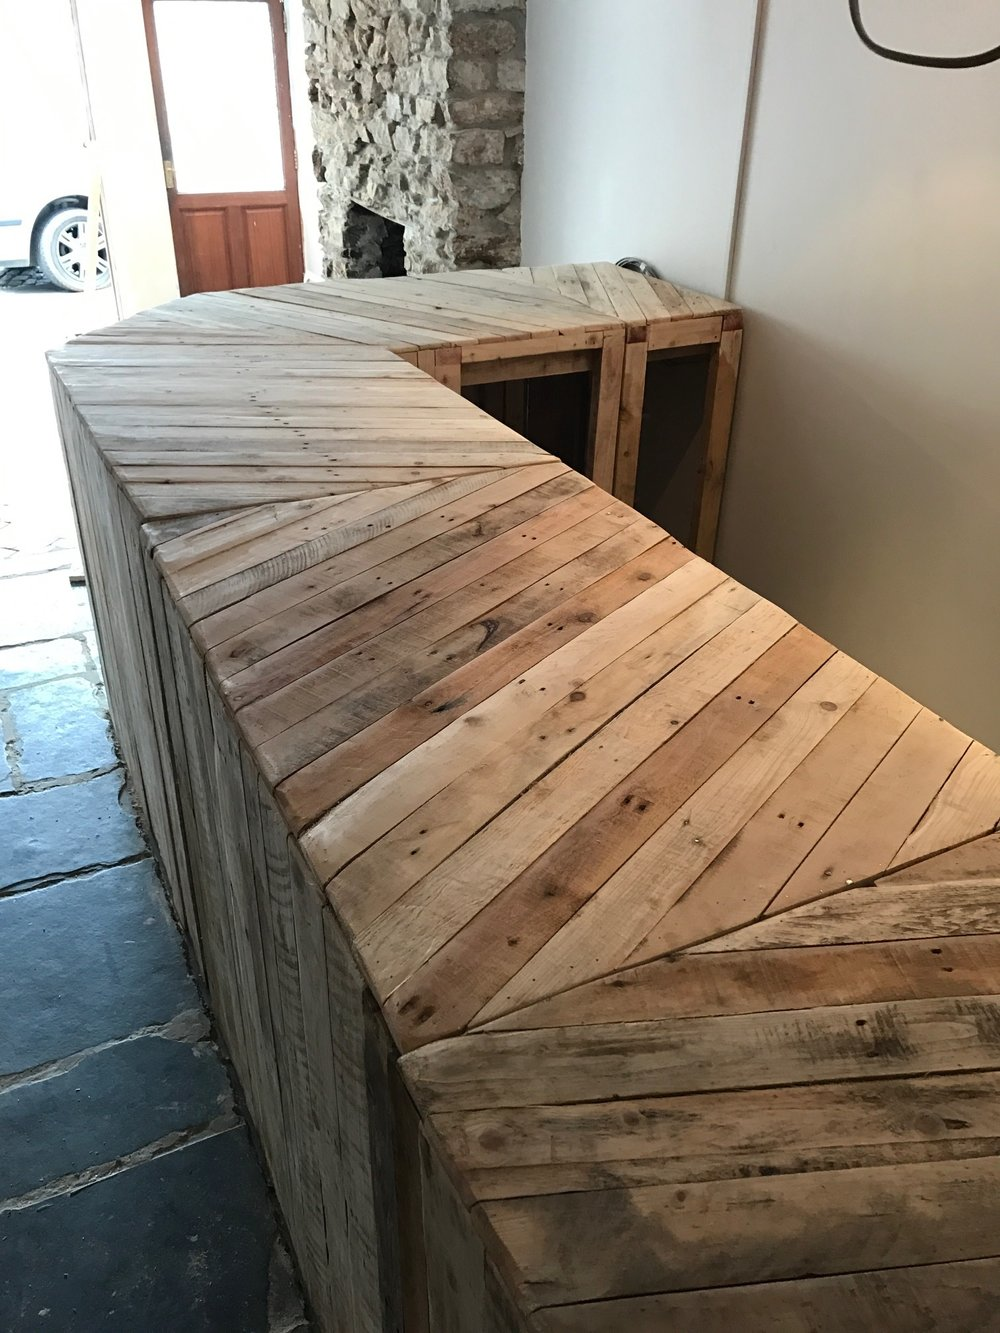 URBANPALLETS supplied 22 tables for our new central london bistro  They  look amazing and fit the brief perfectly  Would highly recommend  Thank you  guys. Reclaimed Wood Furniture Made in the UK   Pallet Coffee Tables